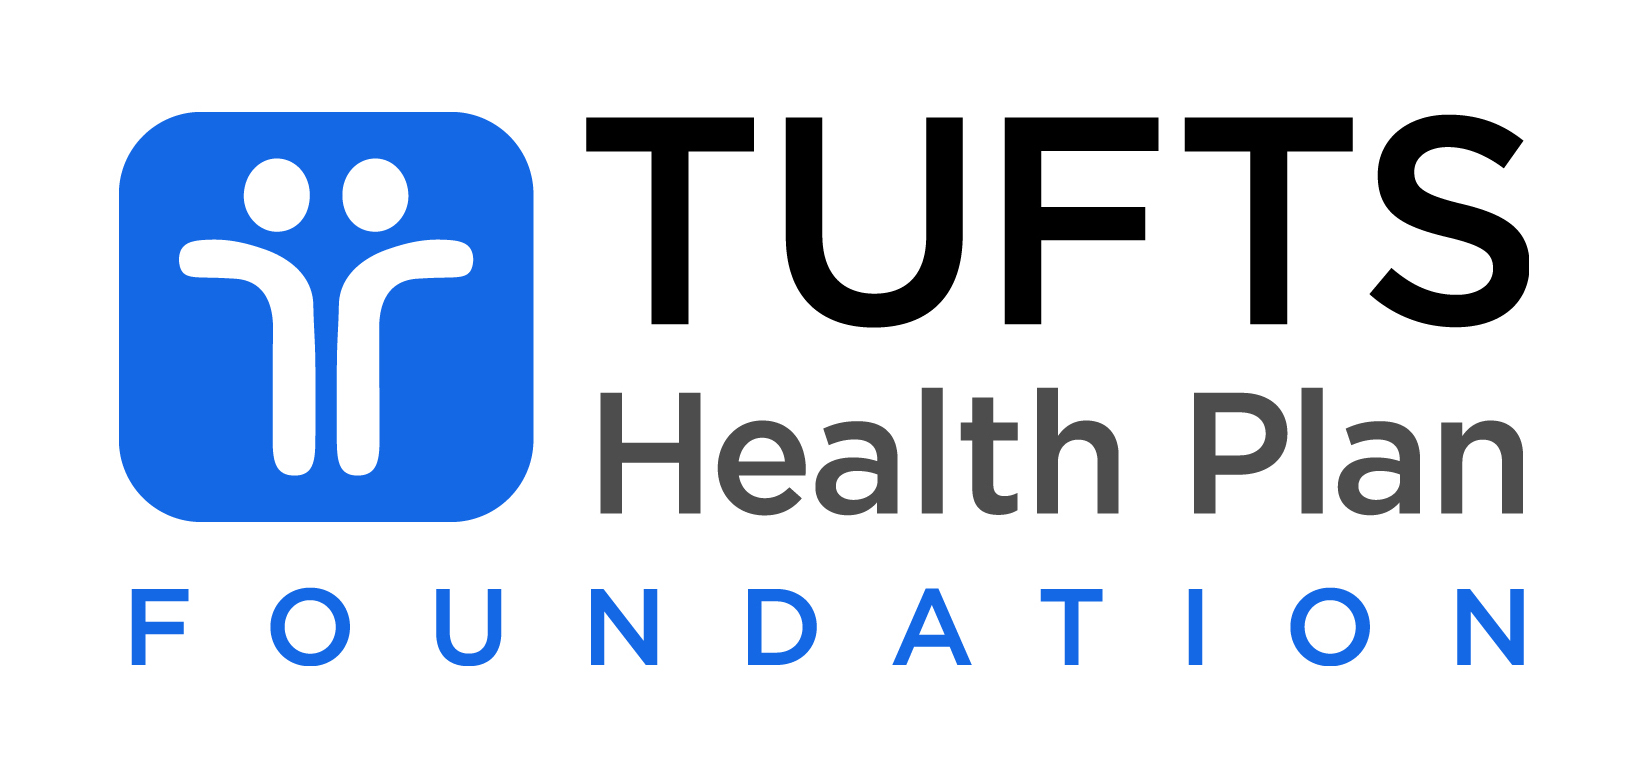 TUFTS-logo-Blue-Foundation-4C.jpg